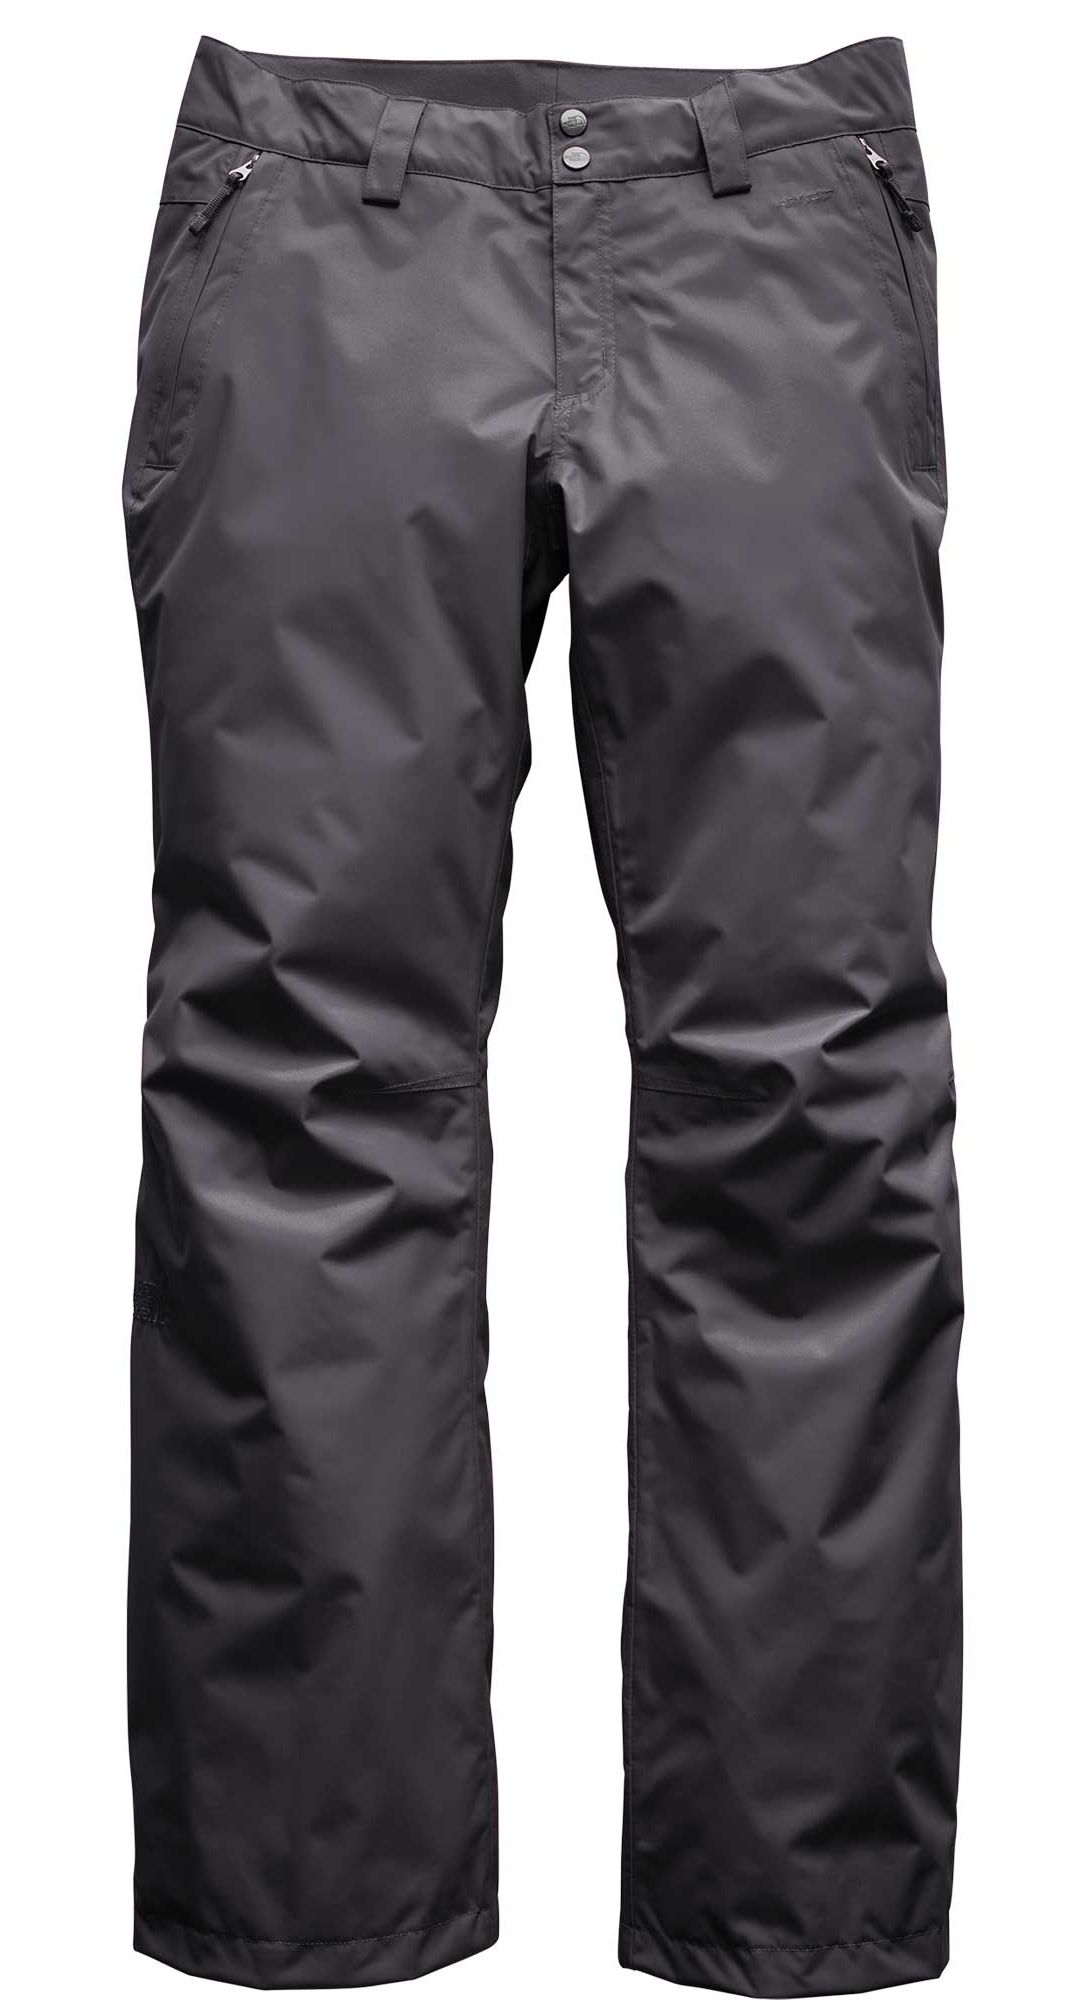 4886fc9298a The North Face Women's Sally Ski Pant